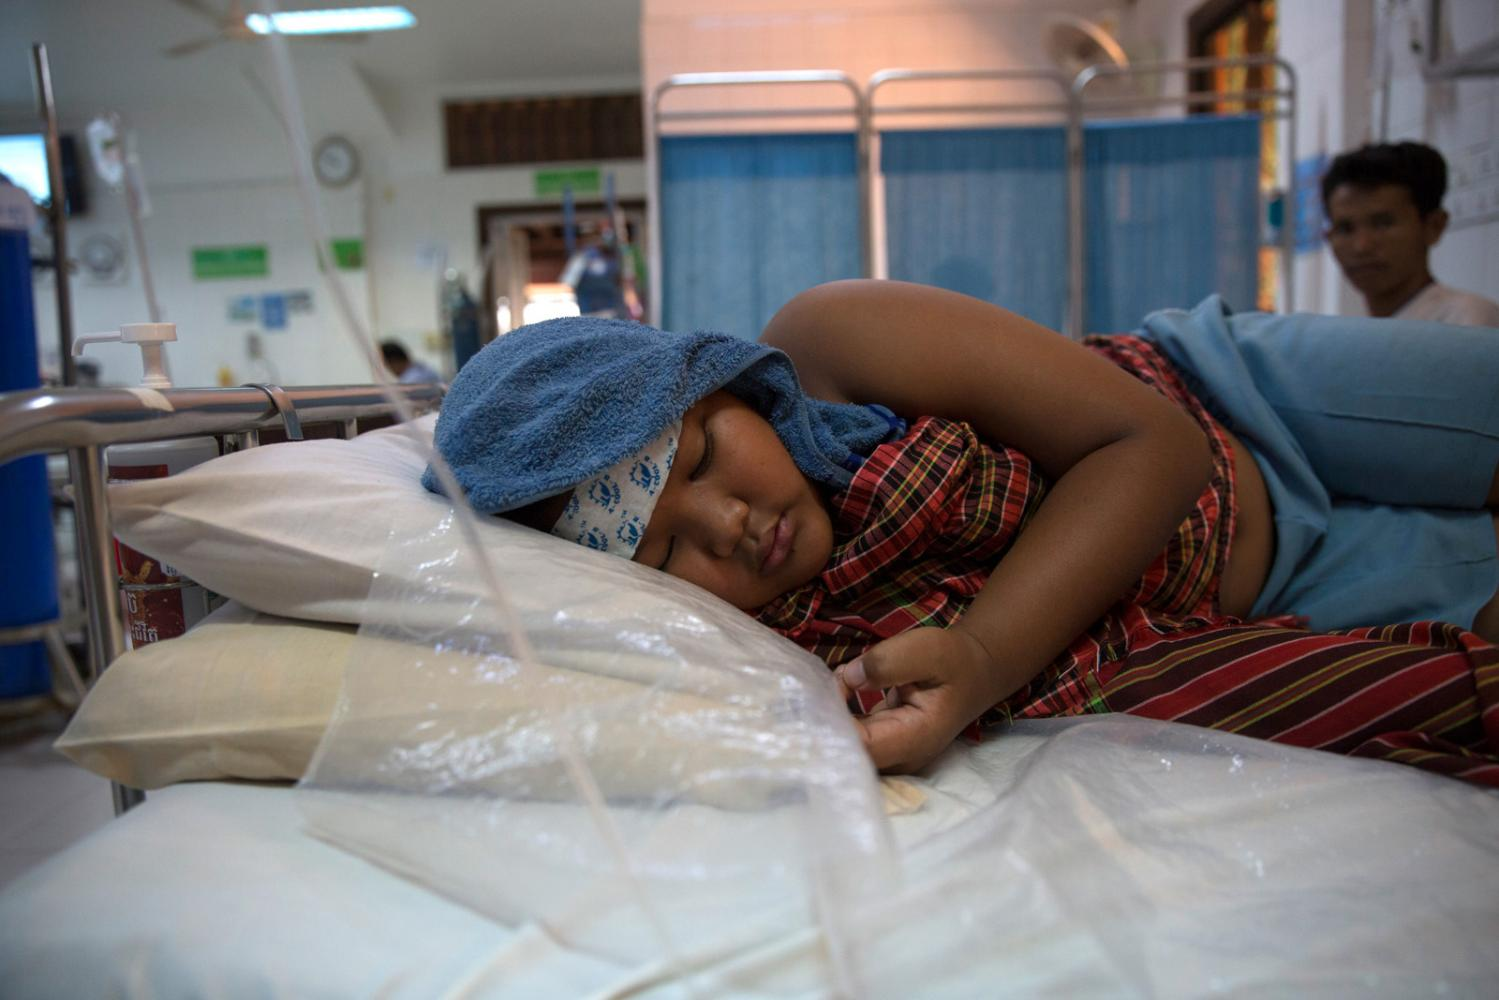 Chan Pheakdey, 10, lies in bed a hospital bed in the inpatient ward of the Angkor Hospital for Children suffering with Dengue hemorrhagic fever. His mother, sister and neighbours all caught dengue fever this year putting a huge burden on an already poor family. Siem Reap, Cambodia - October 2019